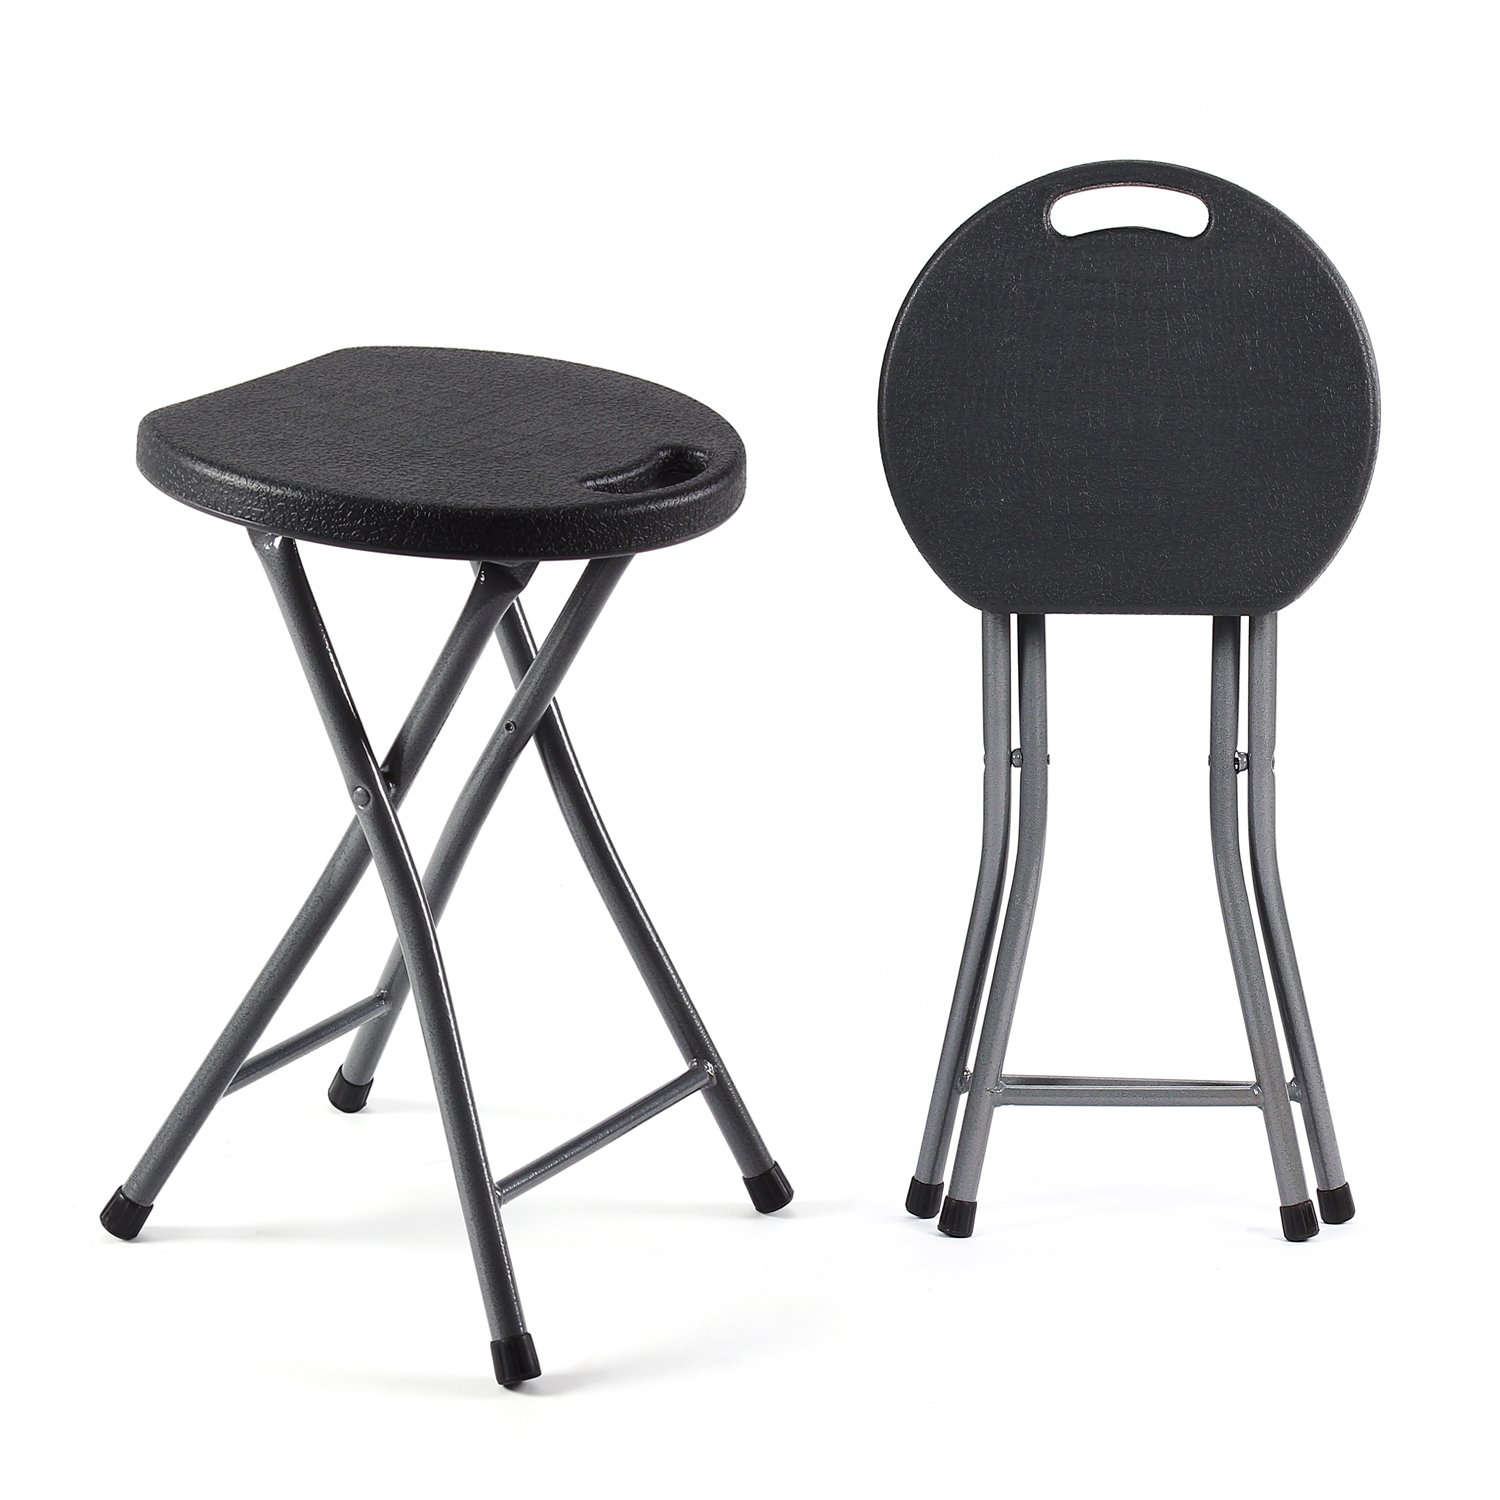 TAVR Folding Stool Set of Two 18.1 inch Height Light Weight Metal and Plastic Folding Stool 400lb Capacity Indoor/Outdoor Use,2-Pack Black,CH1001